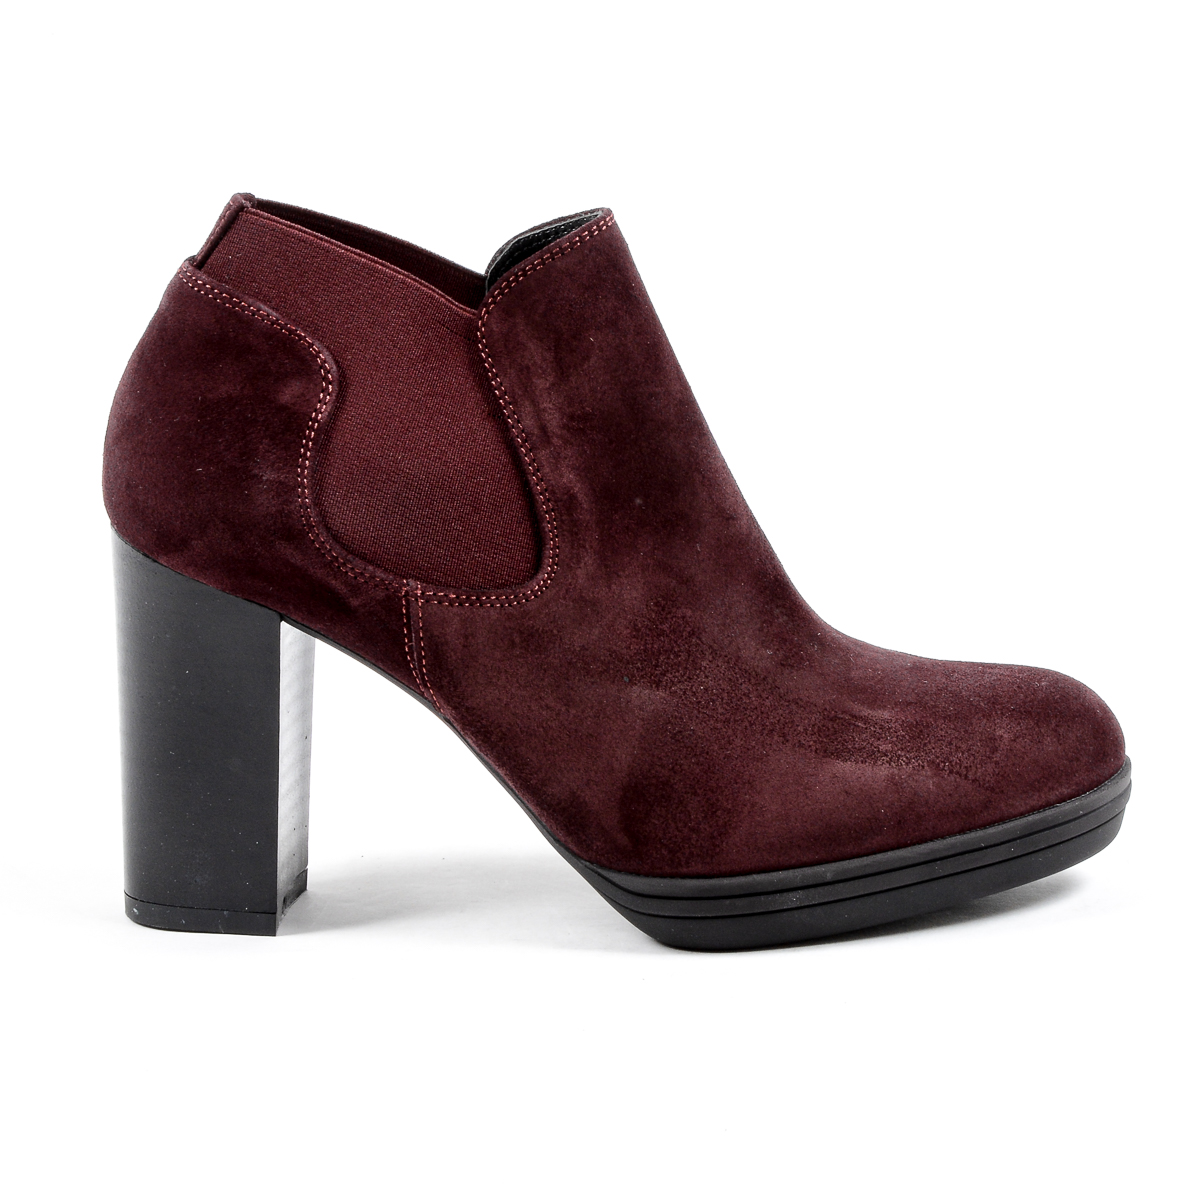 Primary image for V 1969 Italia Womens Heeled Ankle Boot Bordeaux GRACY